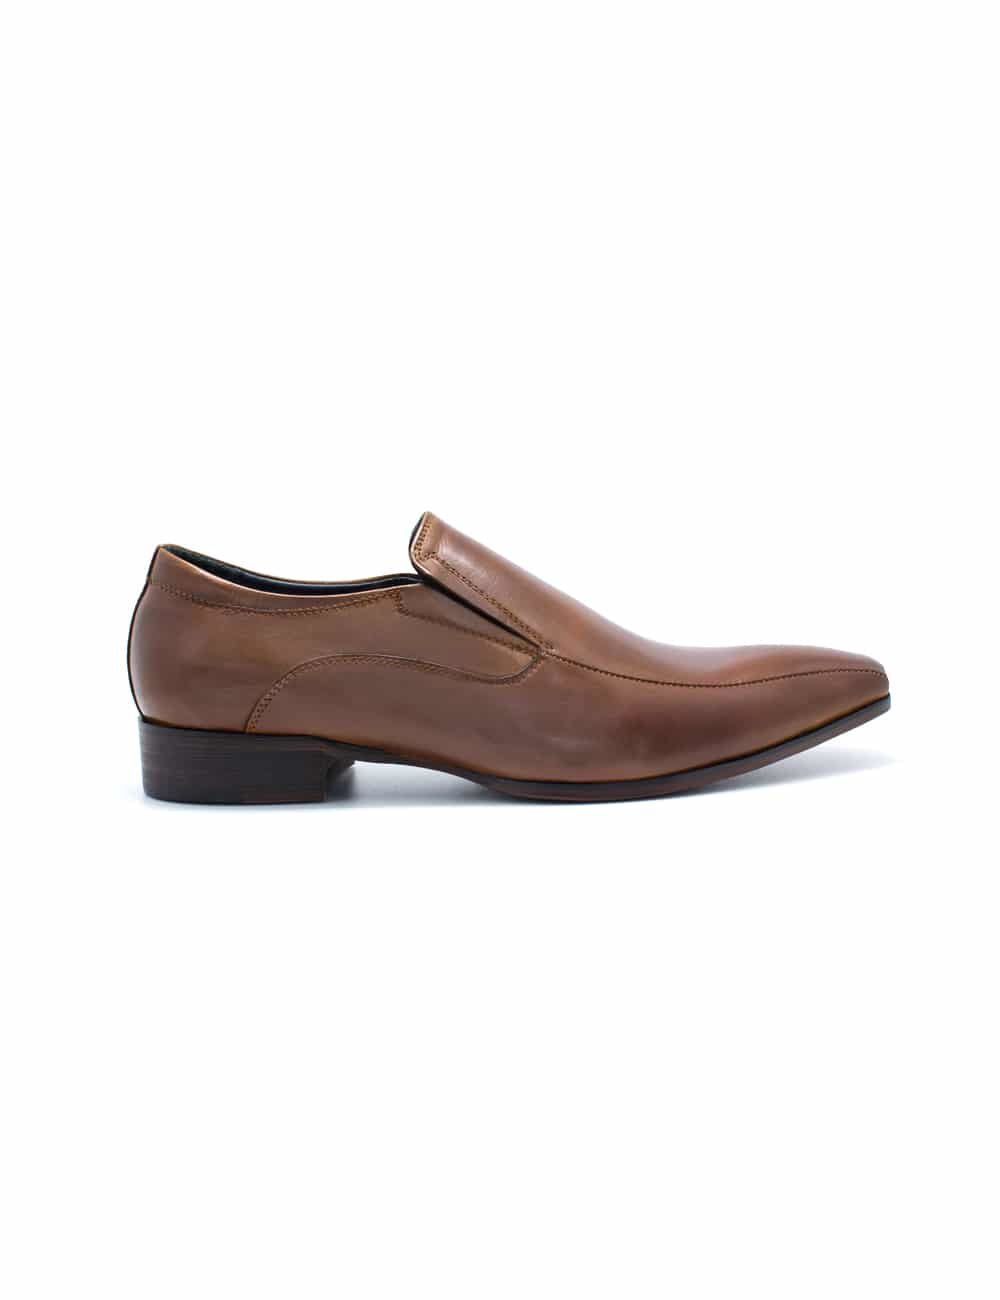 Brown Leather Side Gusset Plain Toe Loafers F21D11.4